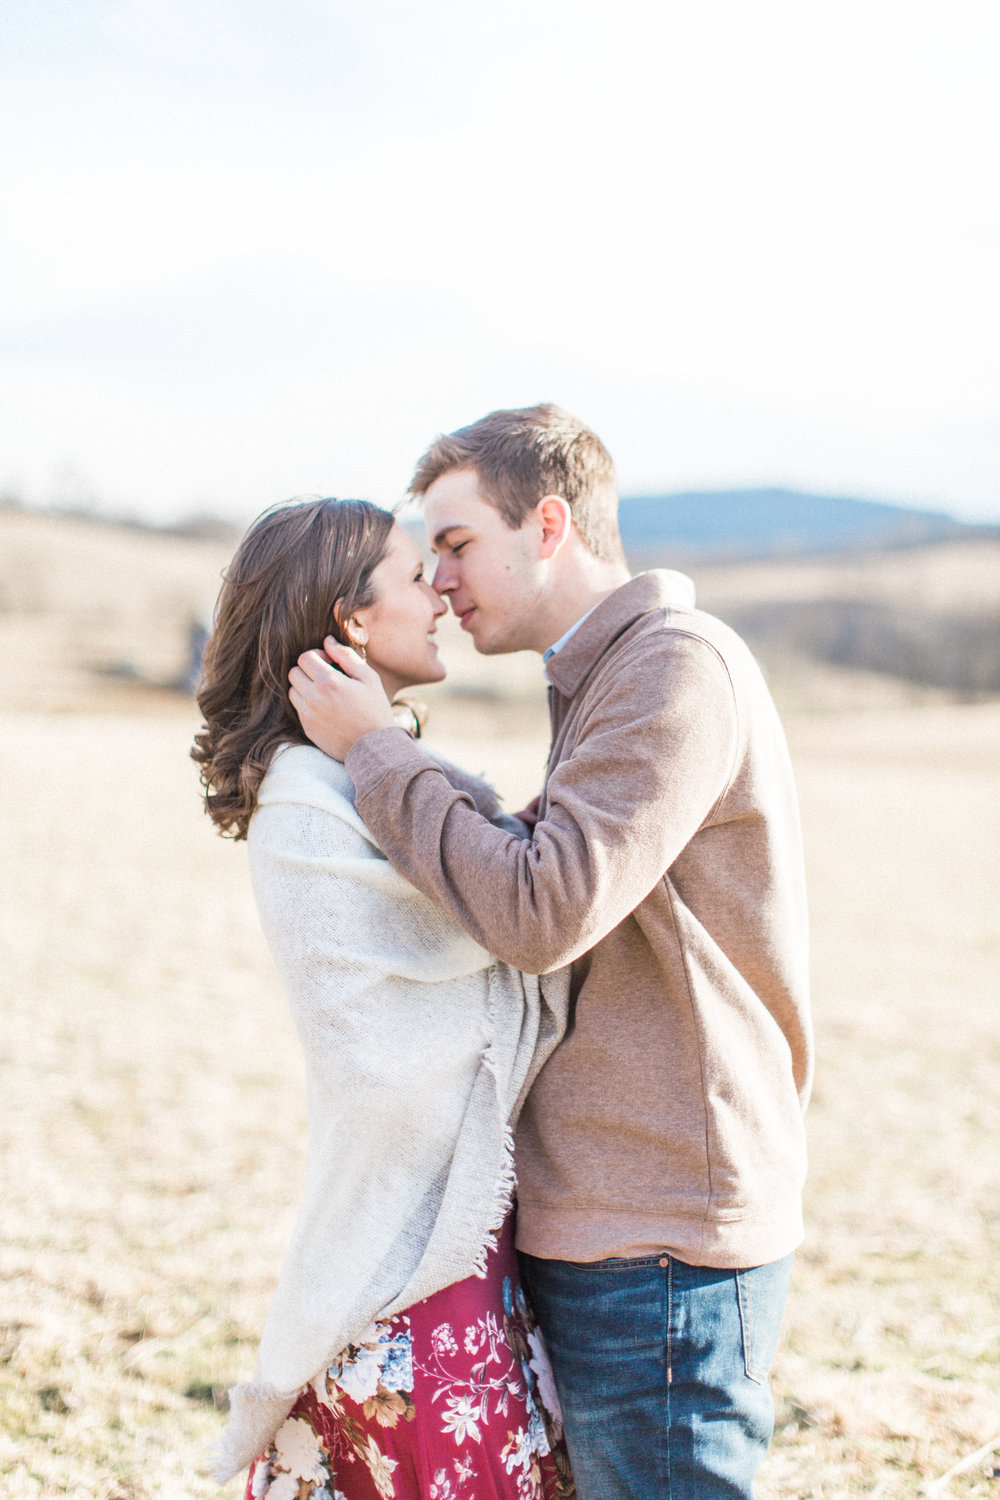 Abigail_Jill_Photography_Maryland_Engagement_Farm_Emily_Justin204.jpg